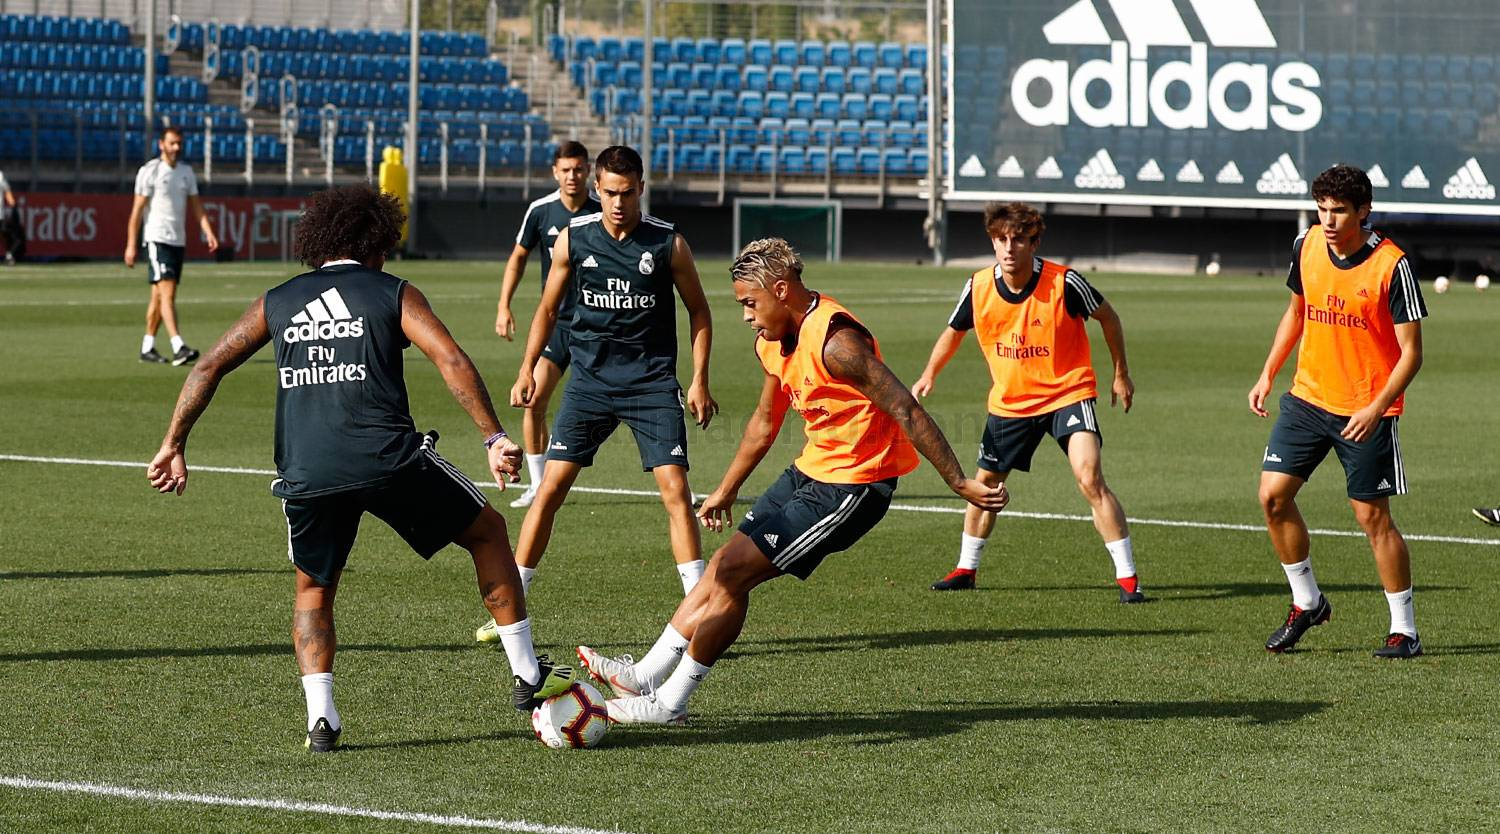 Real Madrid - Entrenamiento del Real Madrid - 06-09-2018